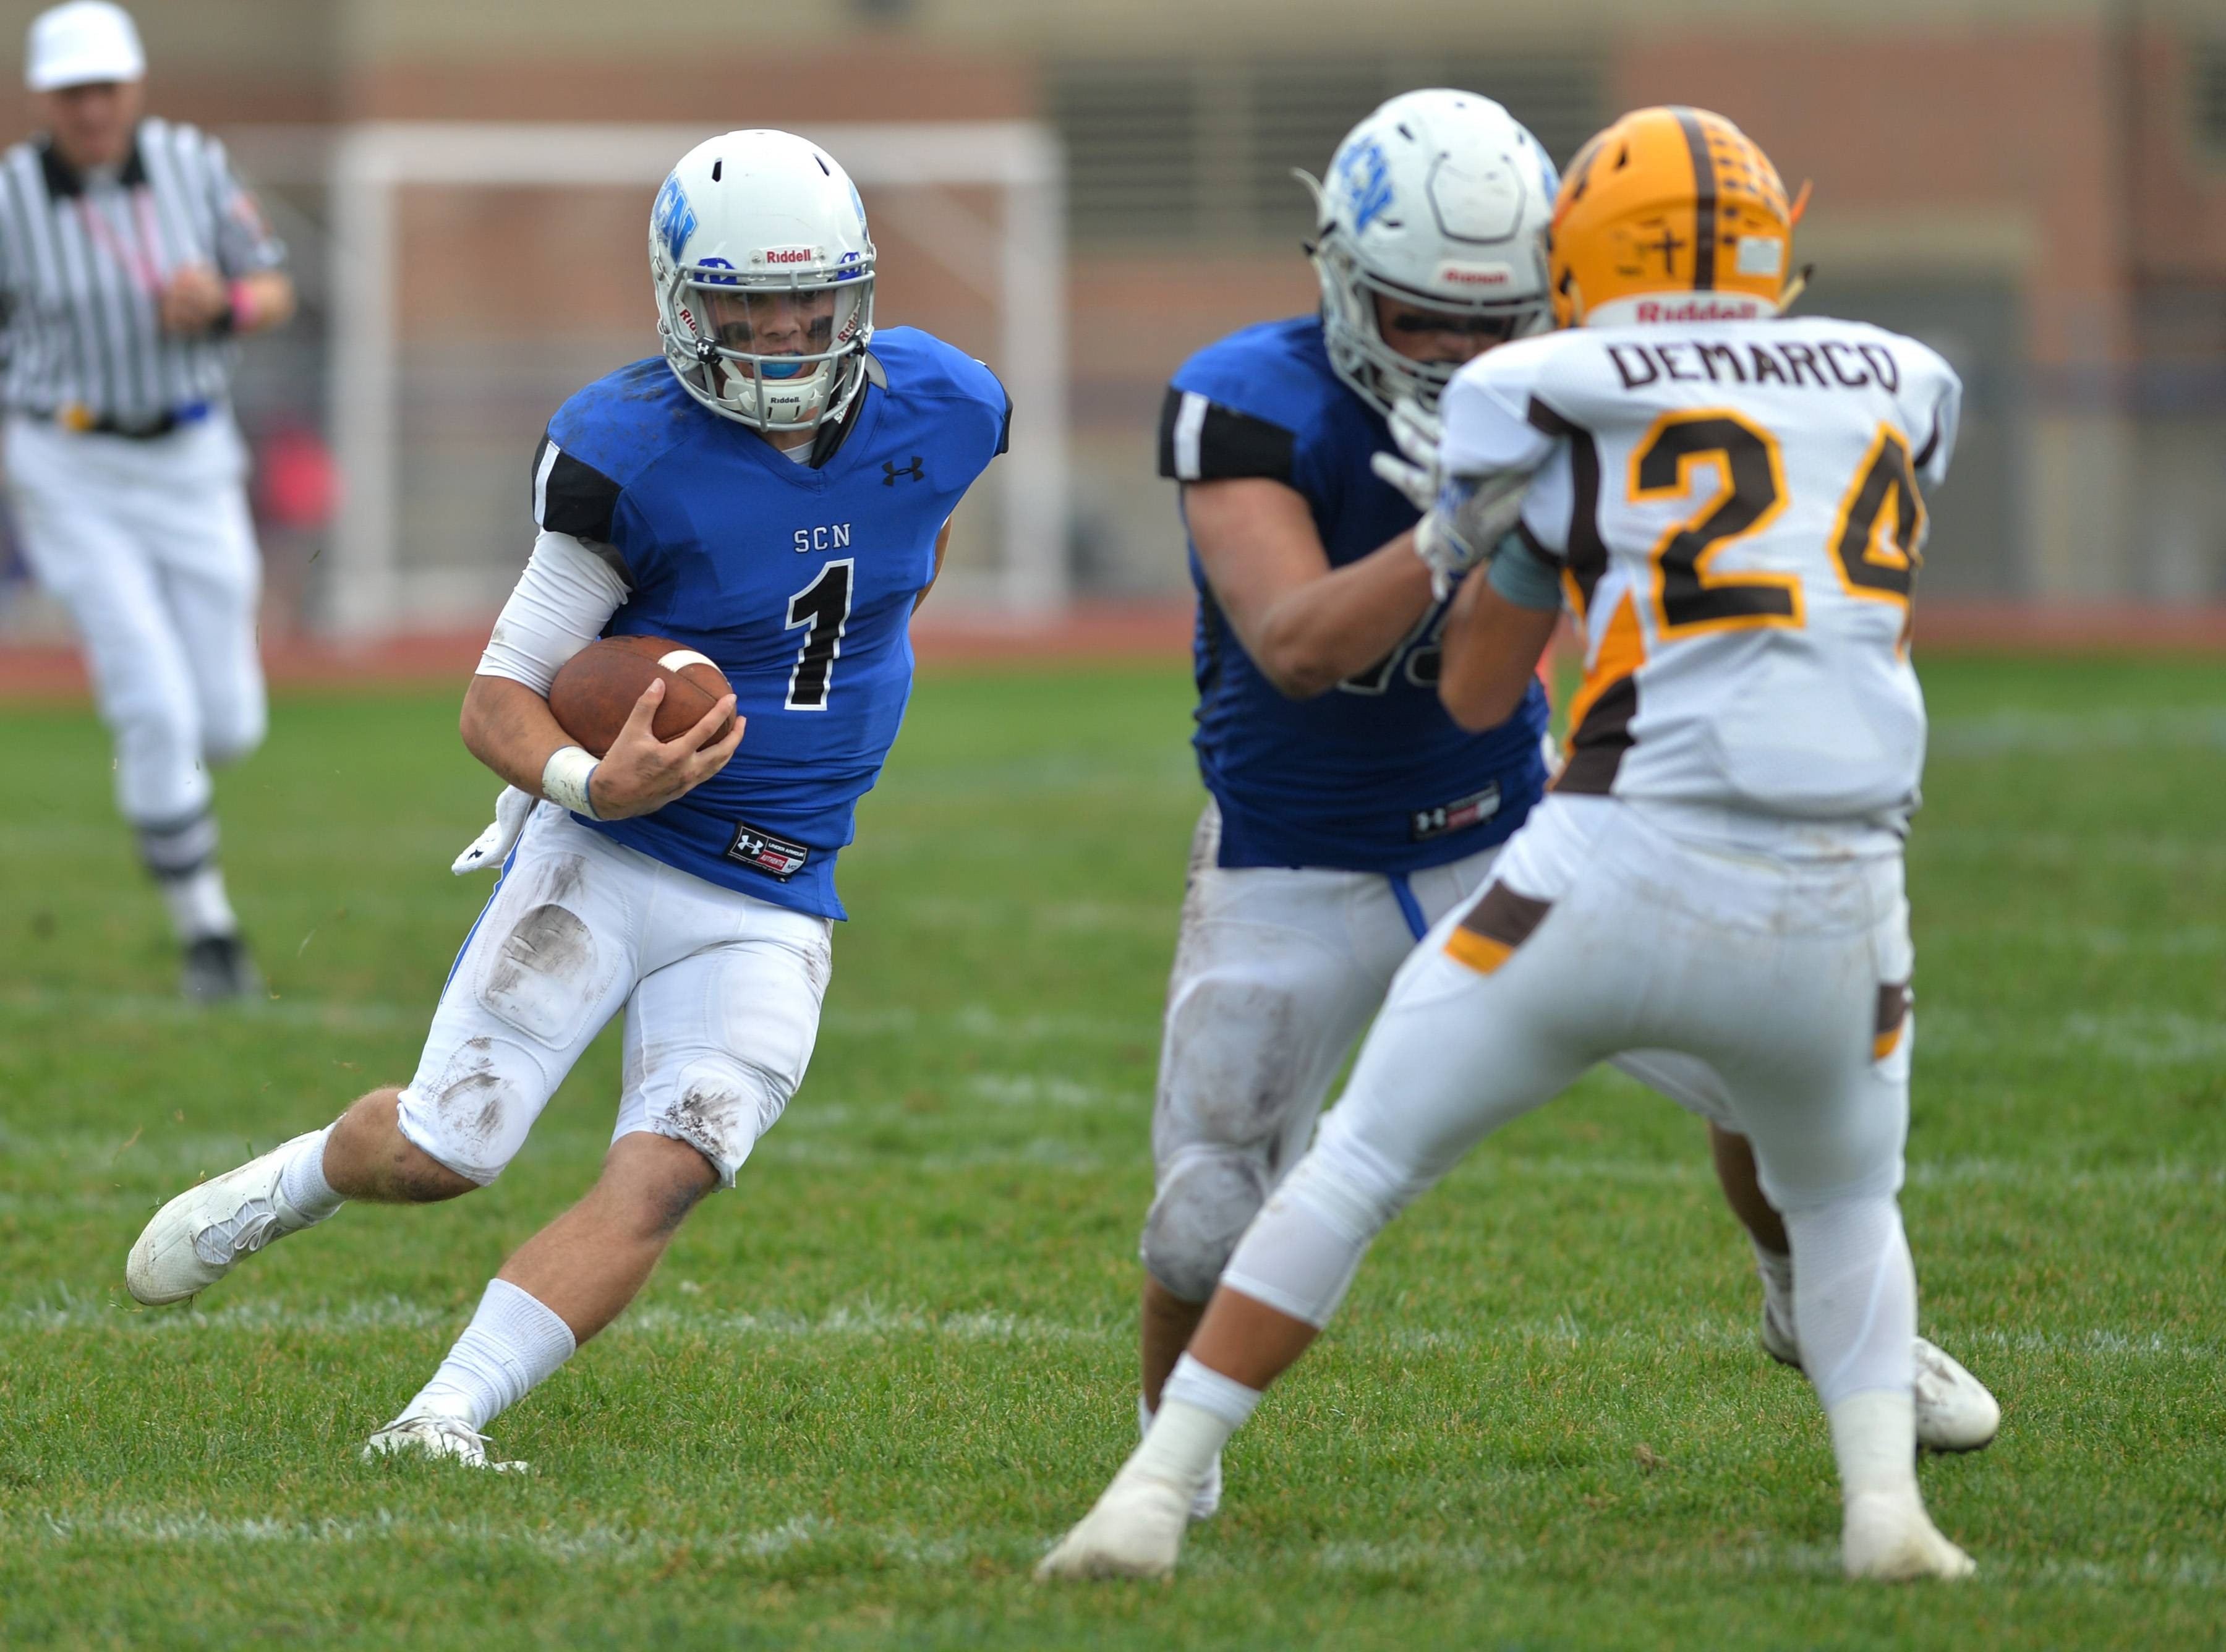 St. Charles North quarterback Zach Mettetal runs on a keeper in the fourth quarter of the North Stars' IHSA Class 7A playoff with Carmel Saturday in St. Charles. The North Stars advanced with a 31-24 double overtime win.